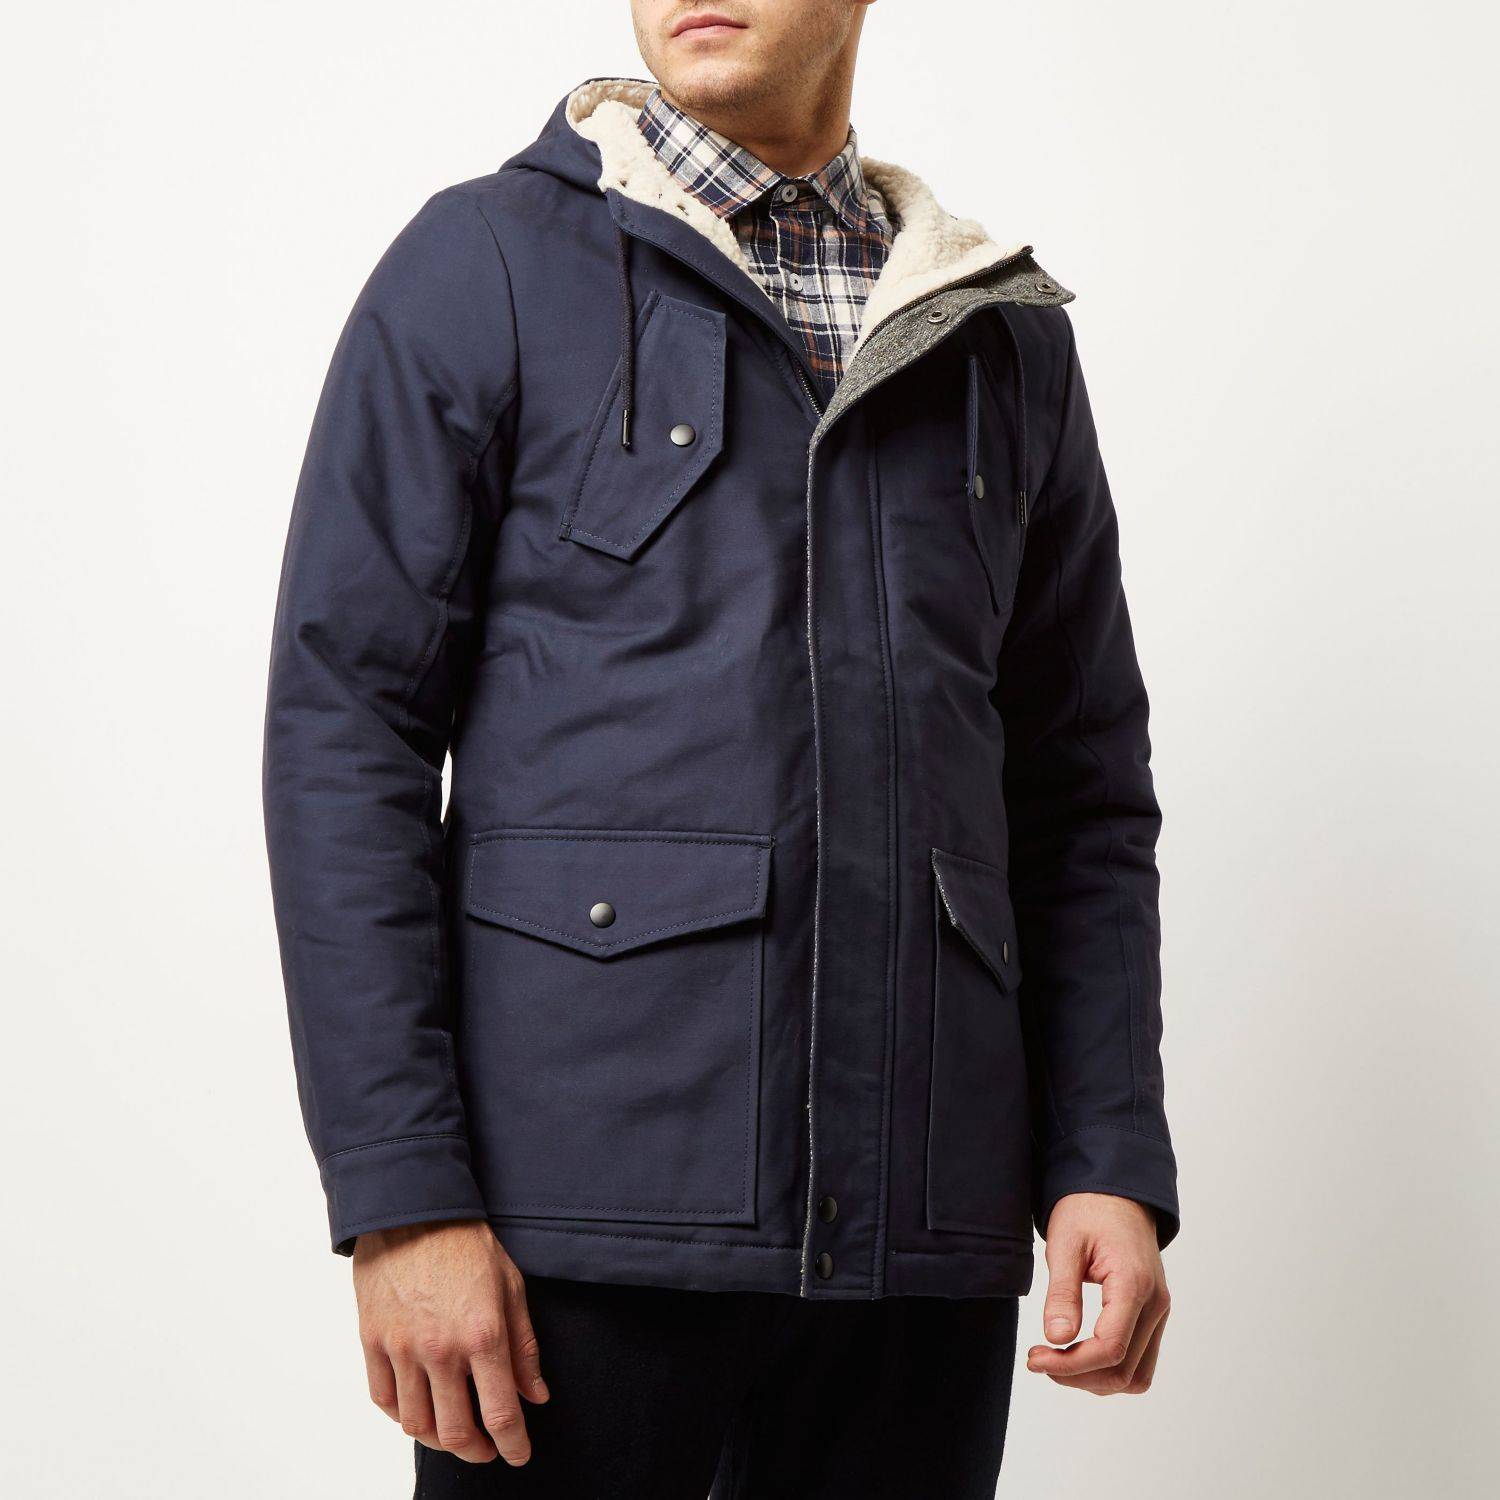 low cost hot sales separation shoes River Island Cotton Navy Borg Lined Winter Coat in Blue for Men - Lyst